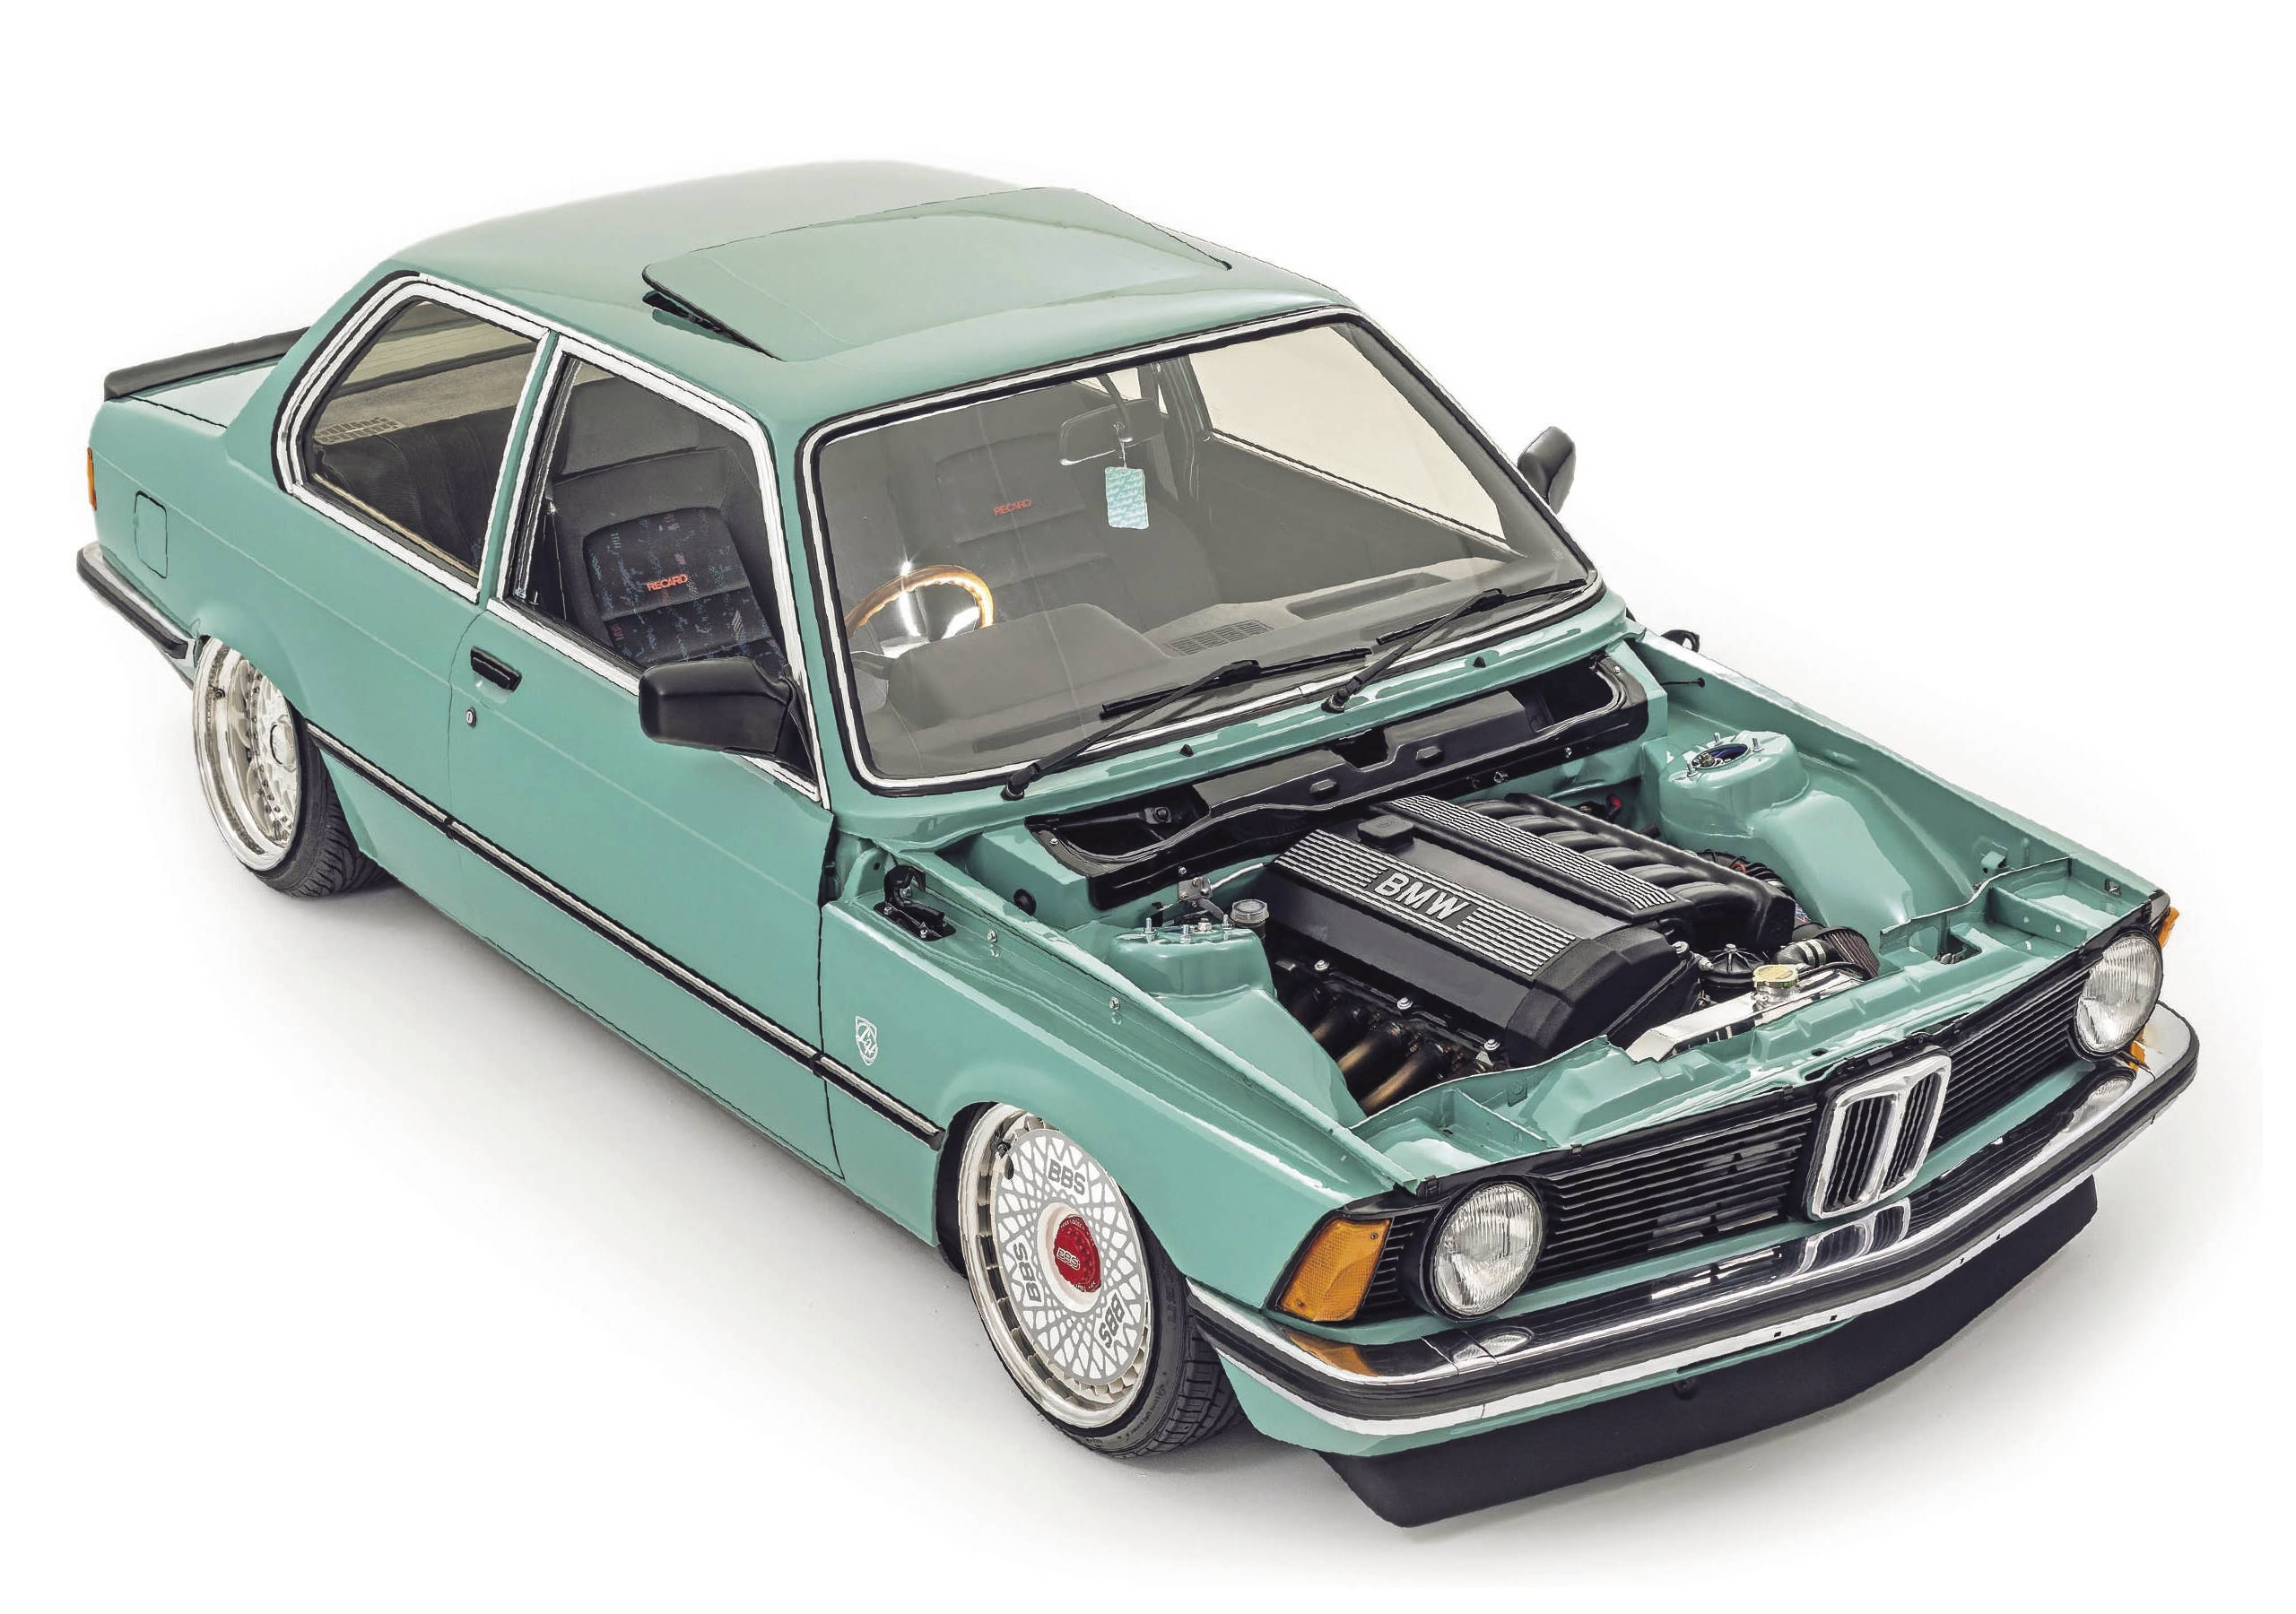 Stunning Epic BMW E21 M50-Swapped - Drive-My Blogs - Drive